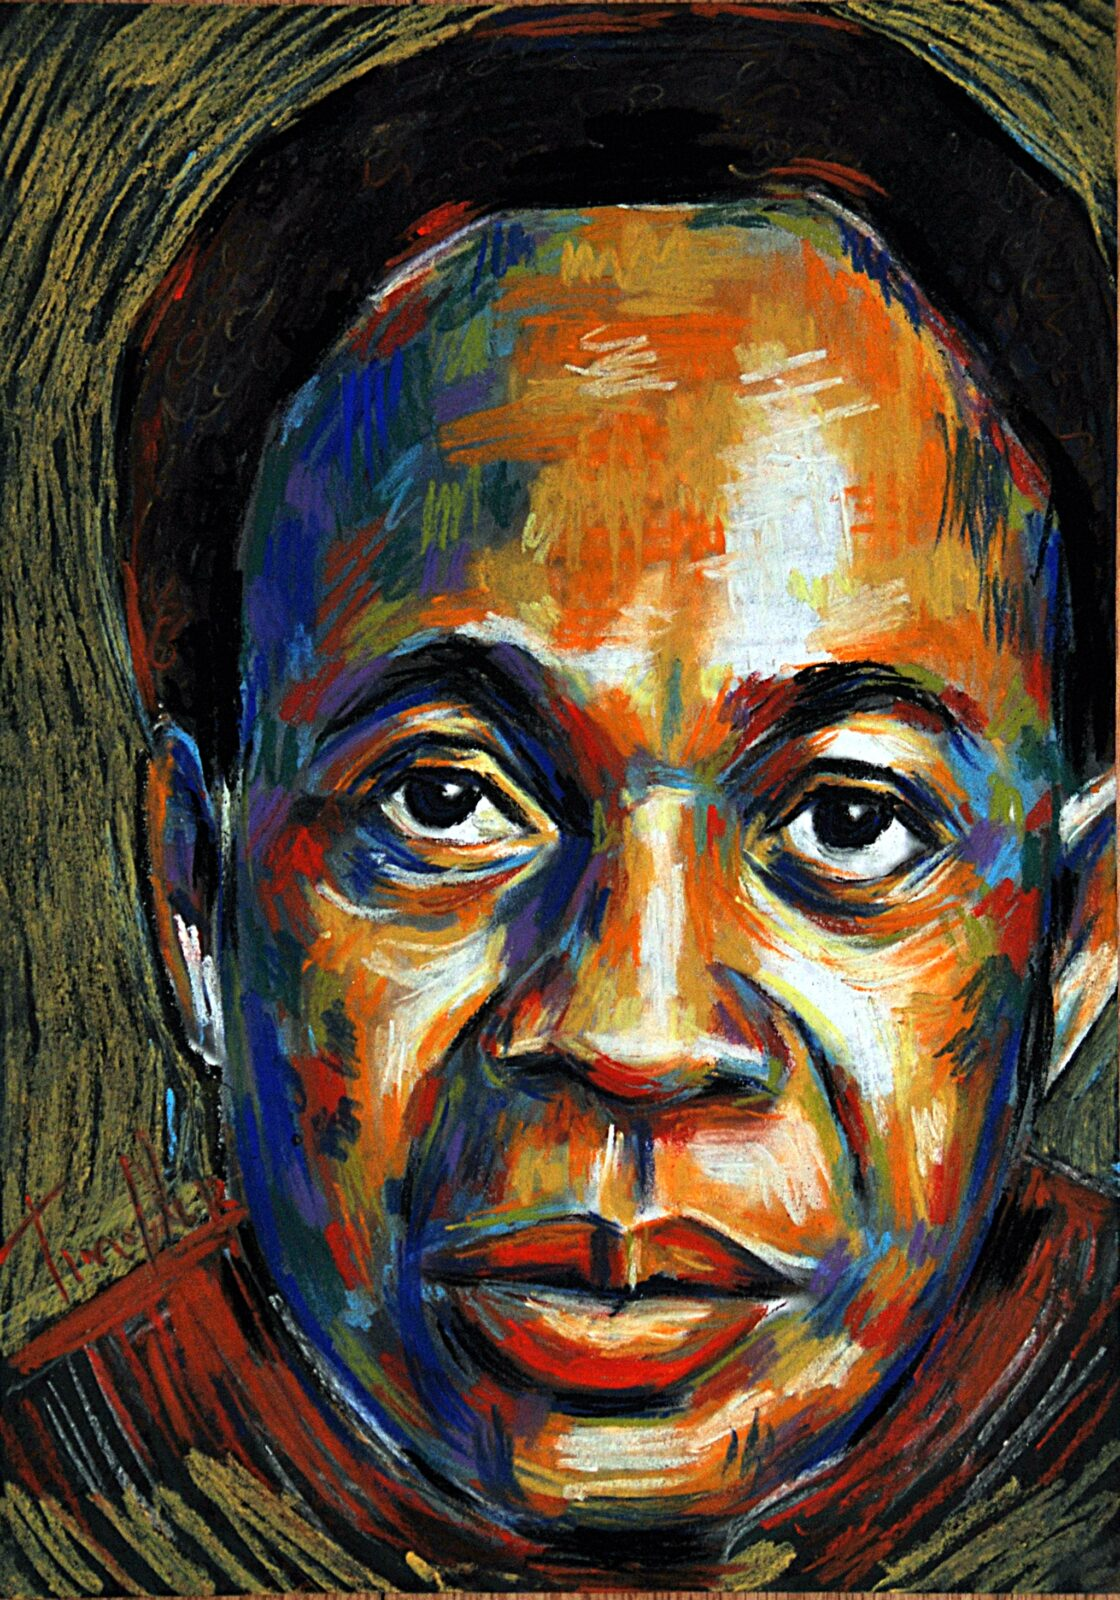 analysis of kwame nkrumah s neo colonialism the Kwame nkrumah's neo-colonialism is the classic statement on the post-colonial condition african, caribbean and third world nation-states after flag independence find they have achieved government or state power but still cannot control the political economies of their country as they appear to be directed from the outside by multi-national.